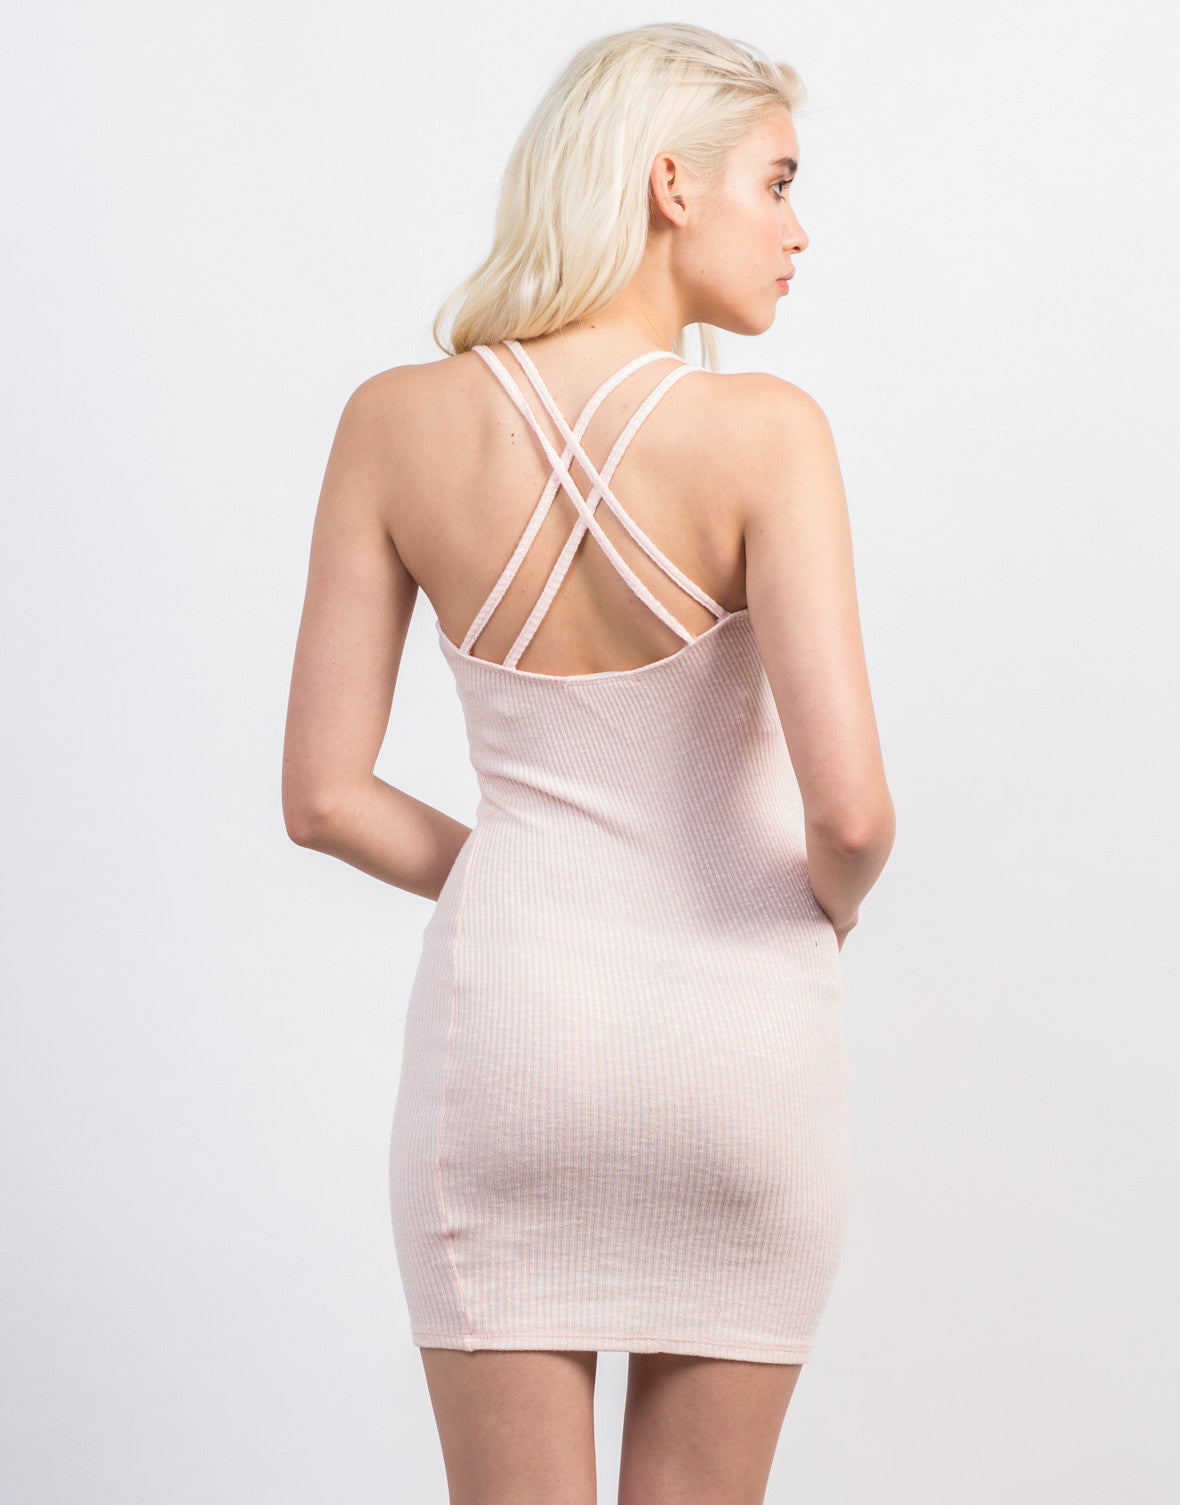 Back View of Strappy Rib Knit Dress